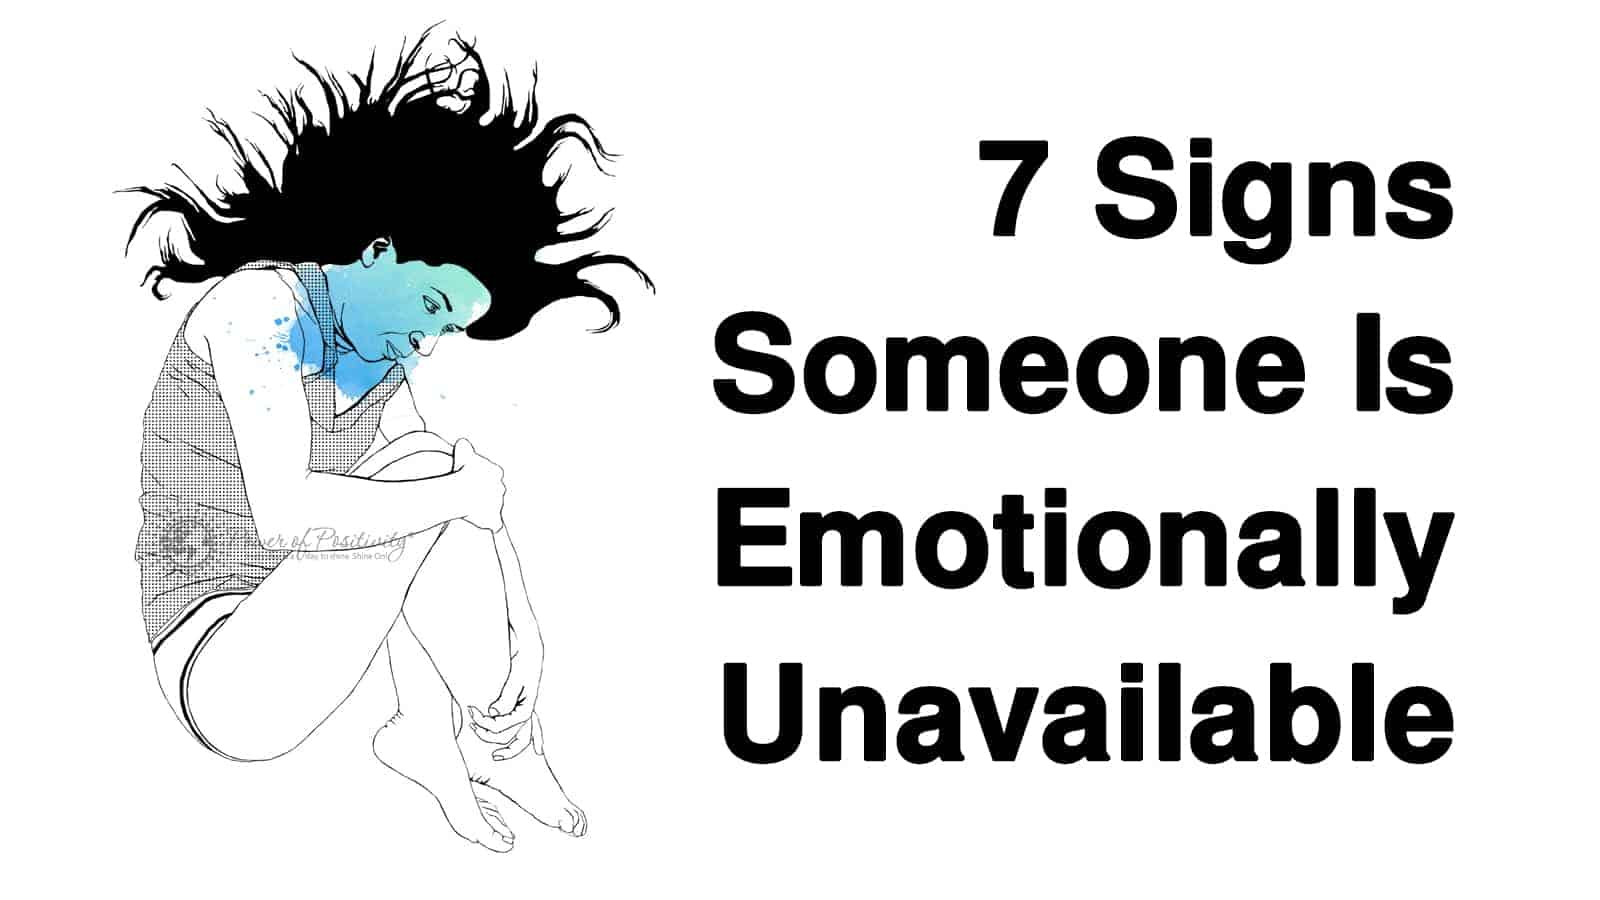 My girlfriend is emotionally unavailable